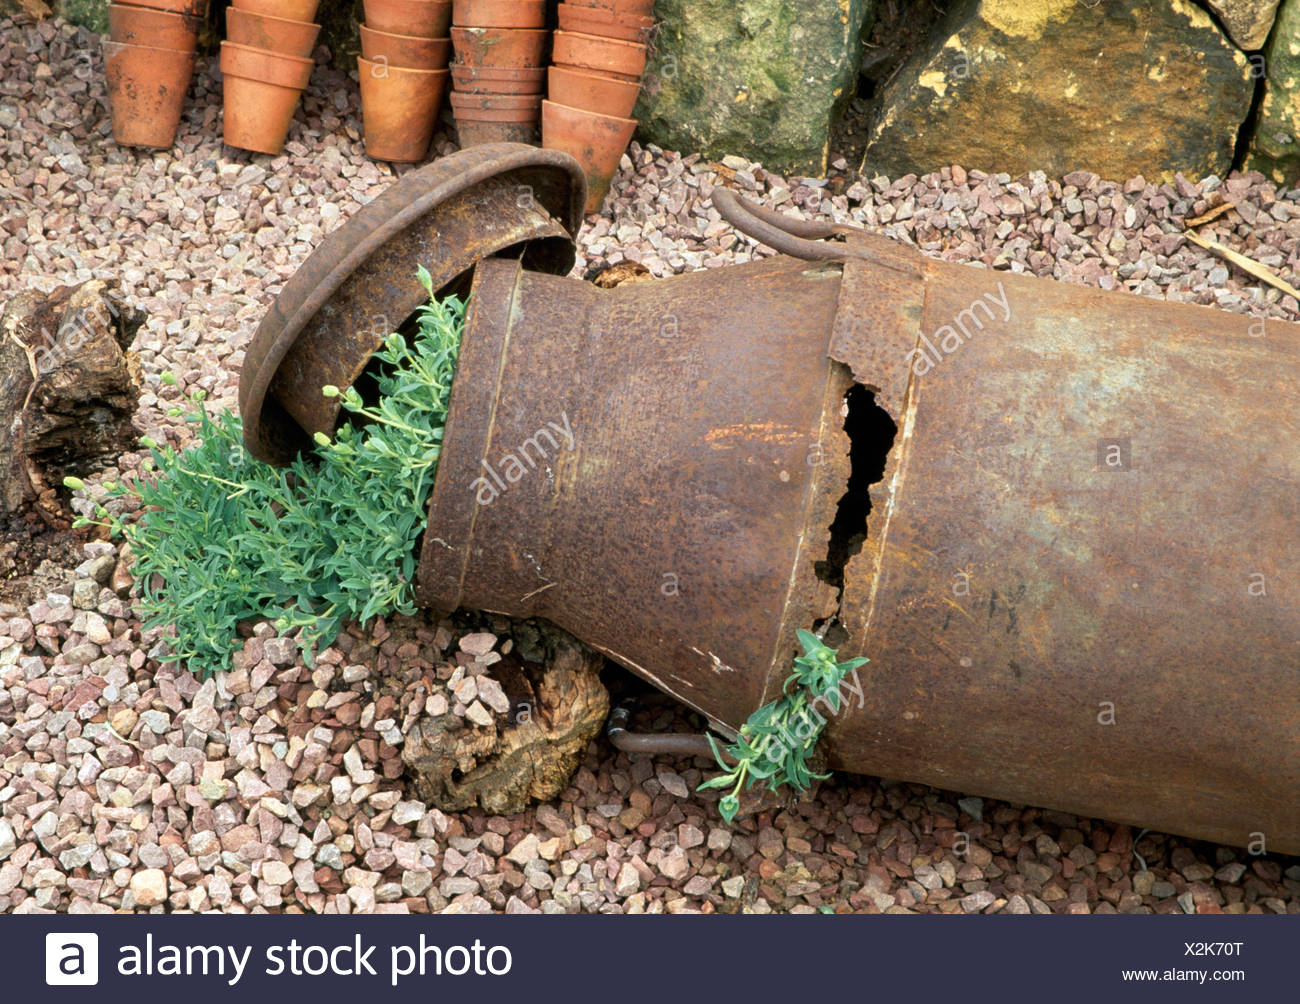 Close-up of a rusted old milk churn with green plants on gravel Stock Photo